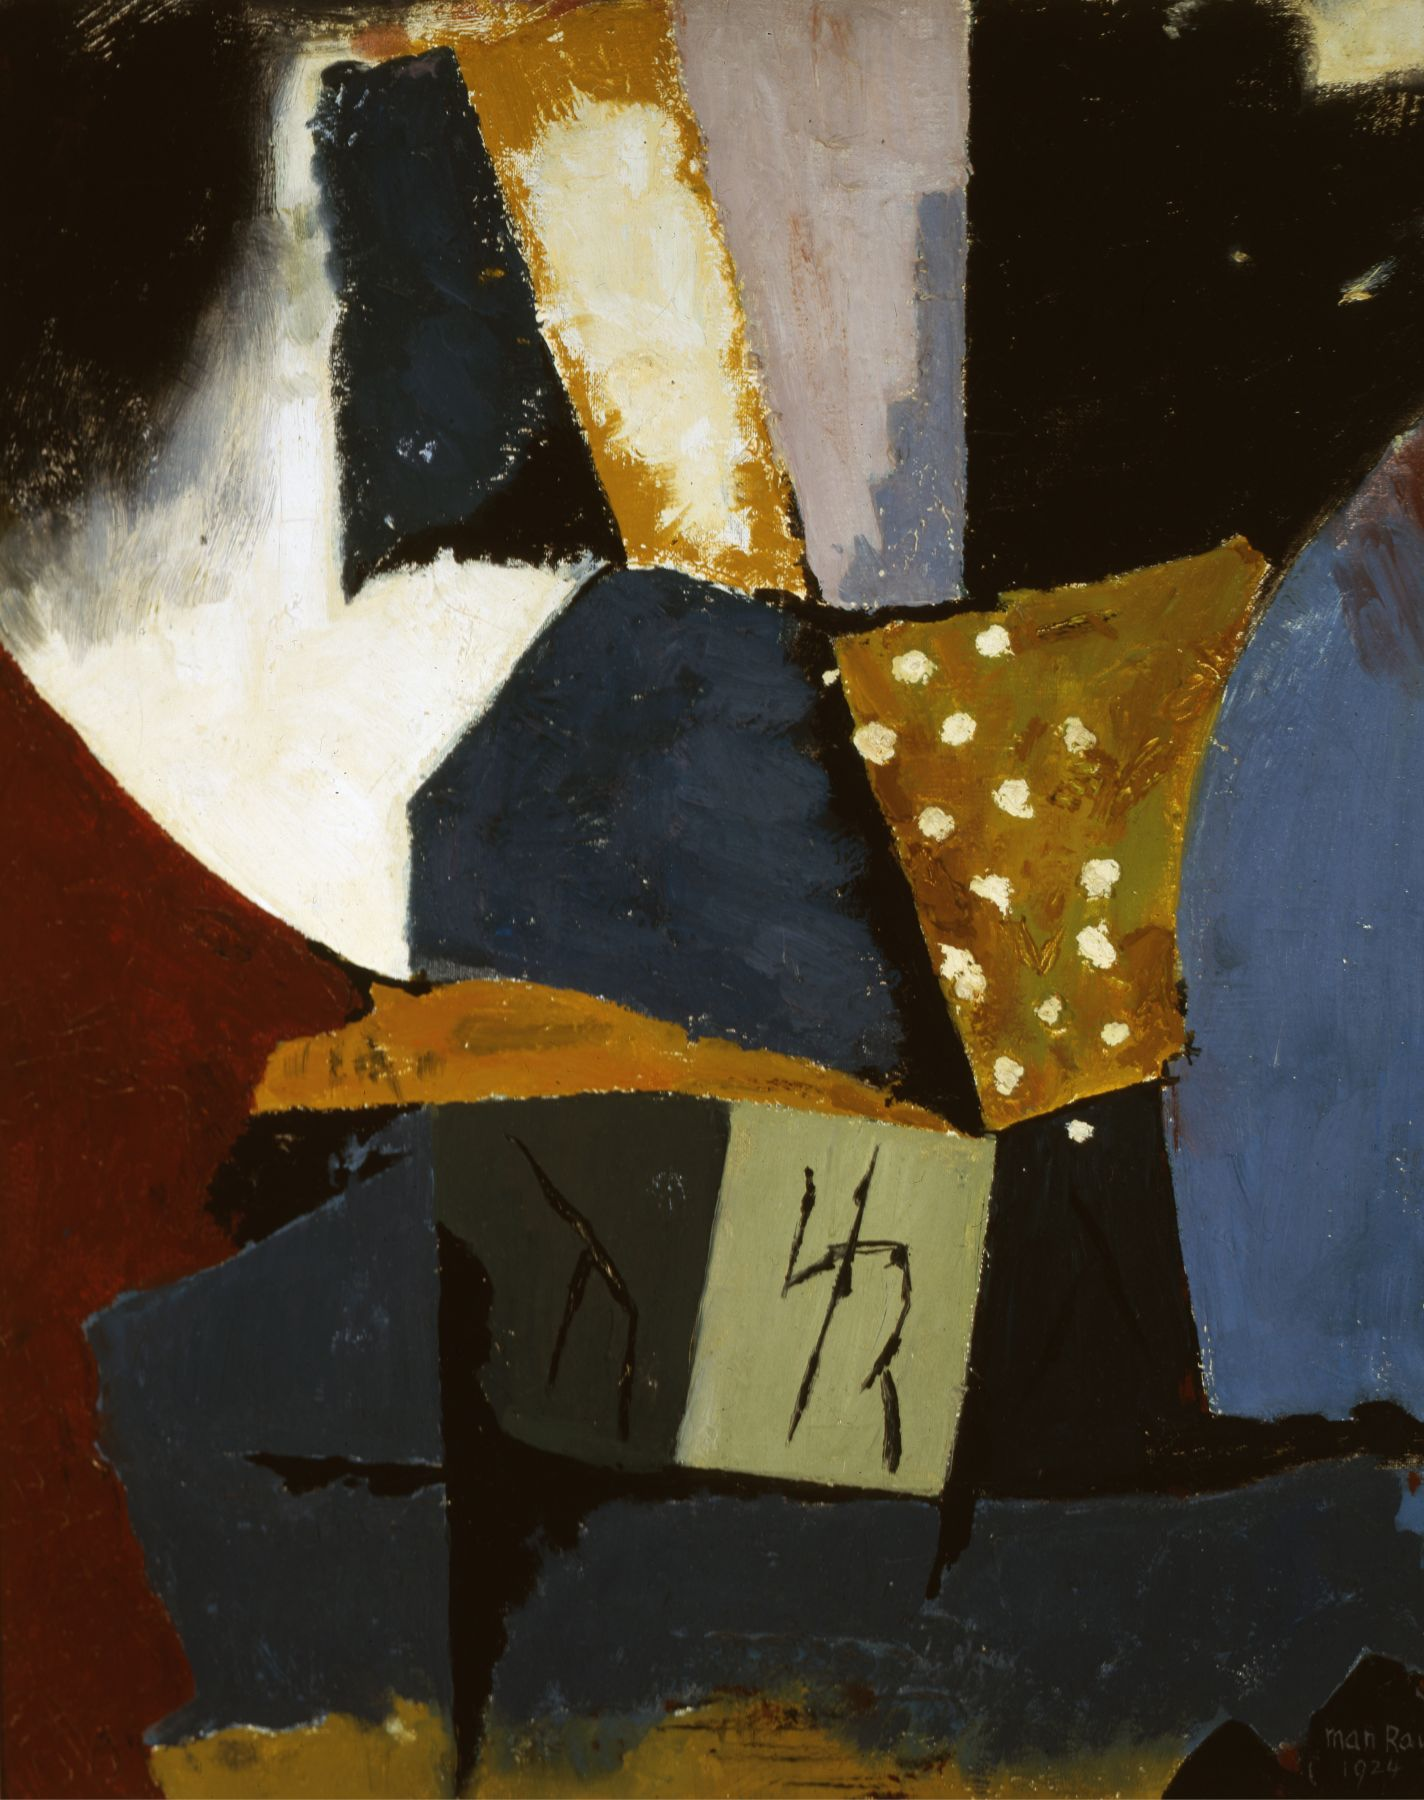 Man Ray, Painting, 1918-1924, oil on canvas, 17 3/8 x 14 1/8 inches